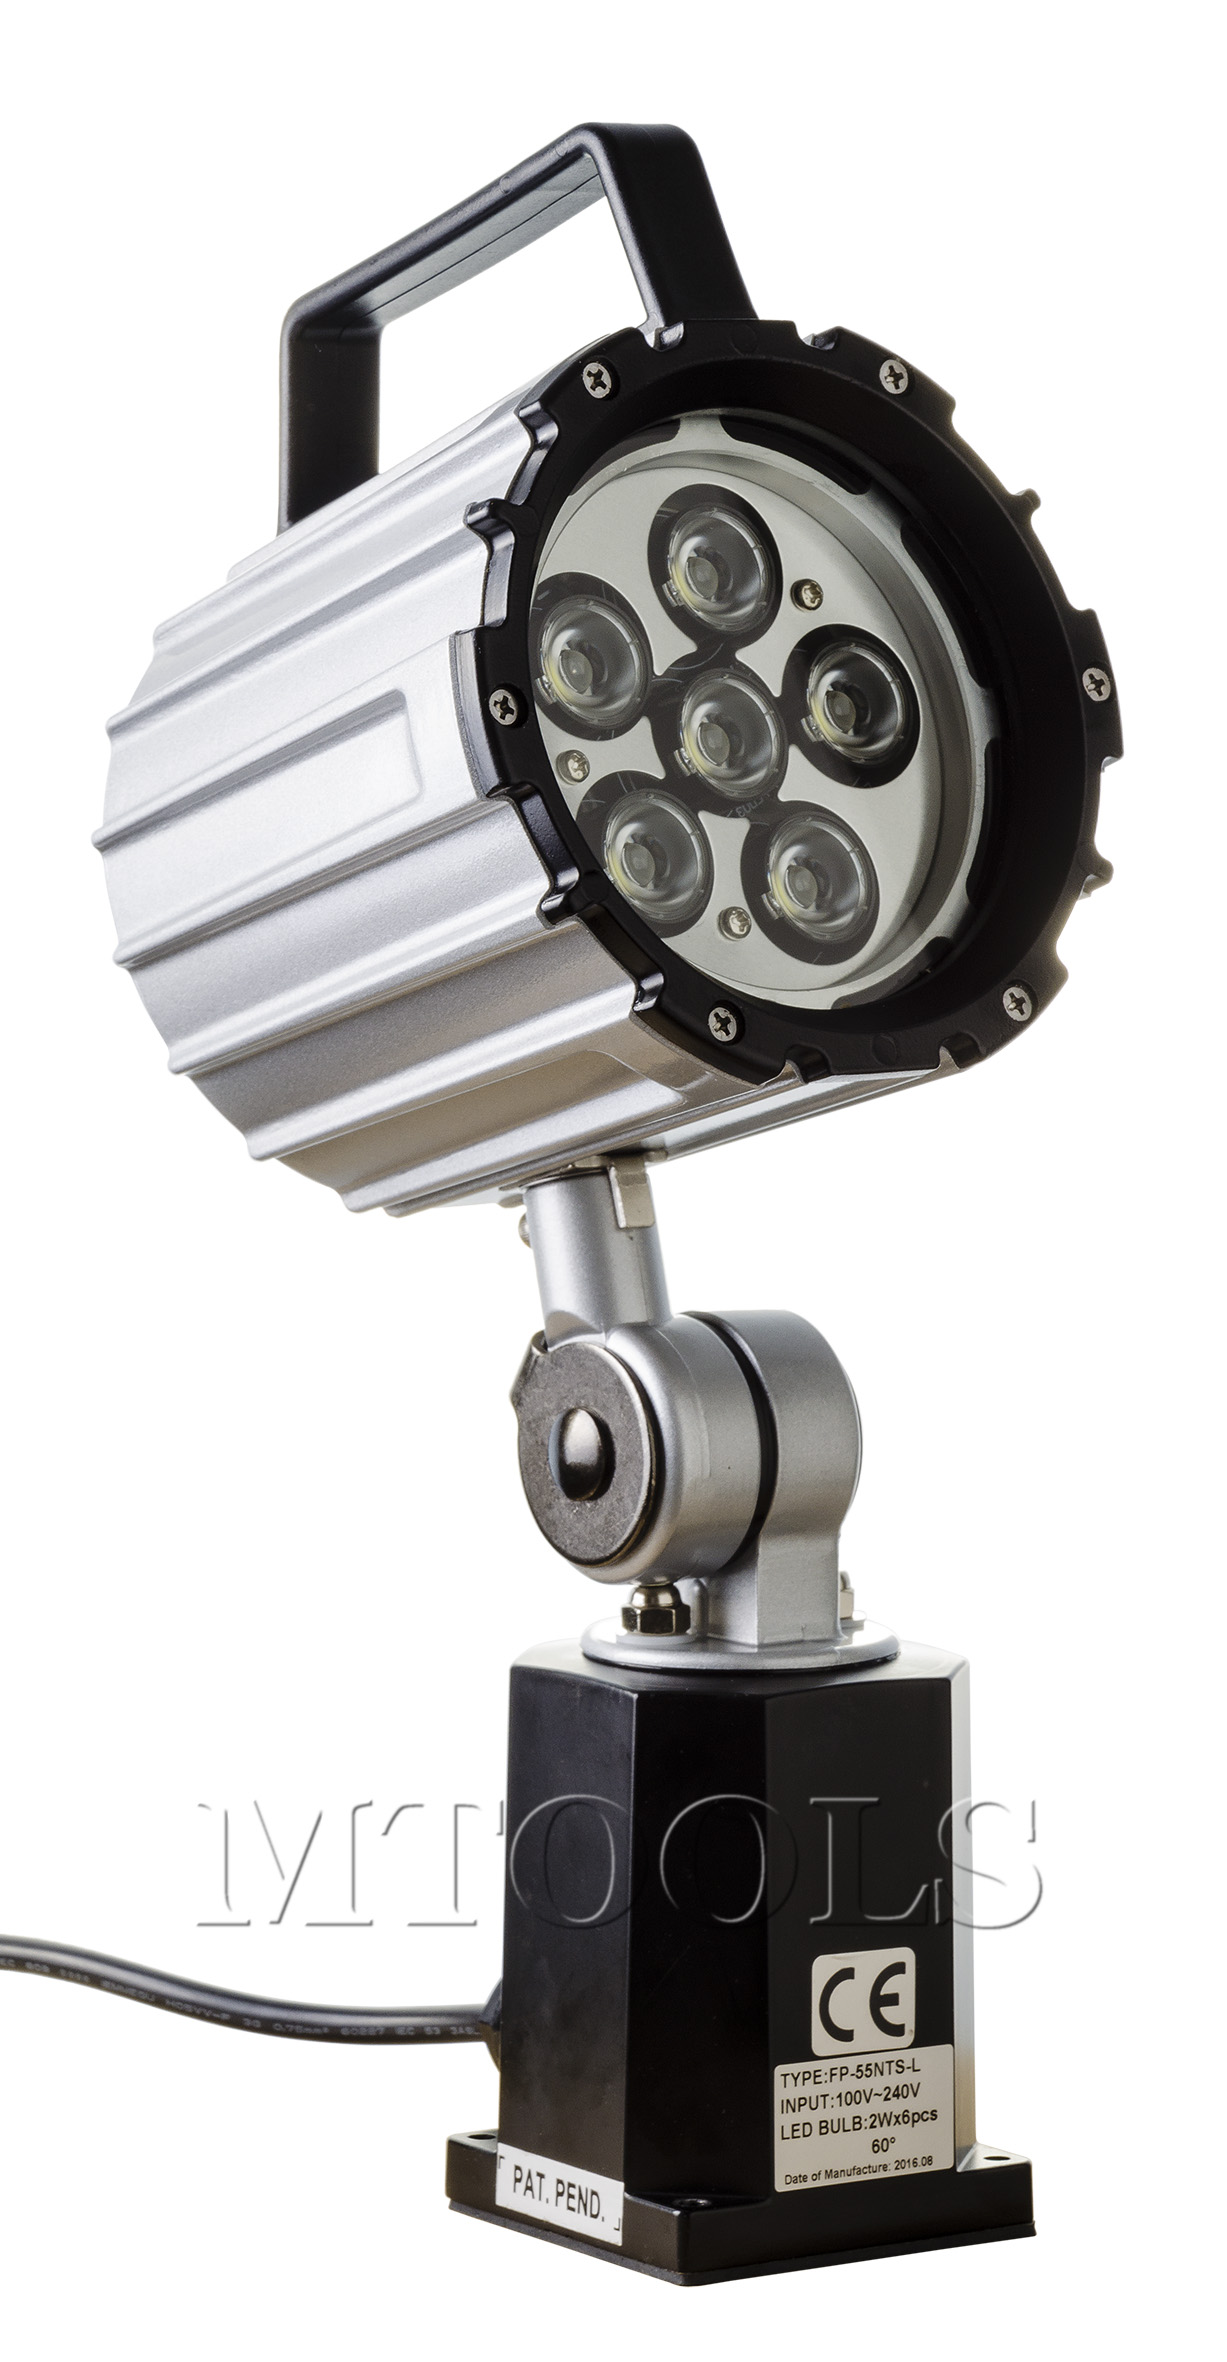 LED Lampa FP-55NTS-L, LED, 6x2W